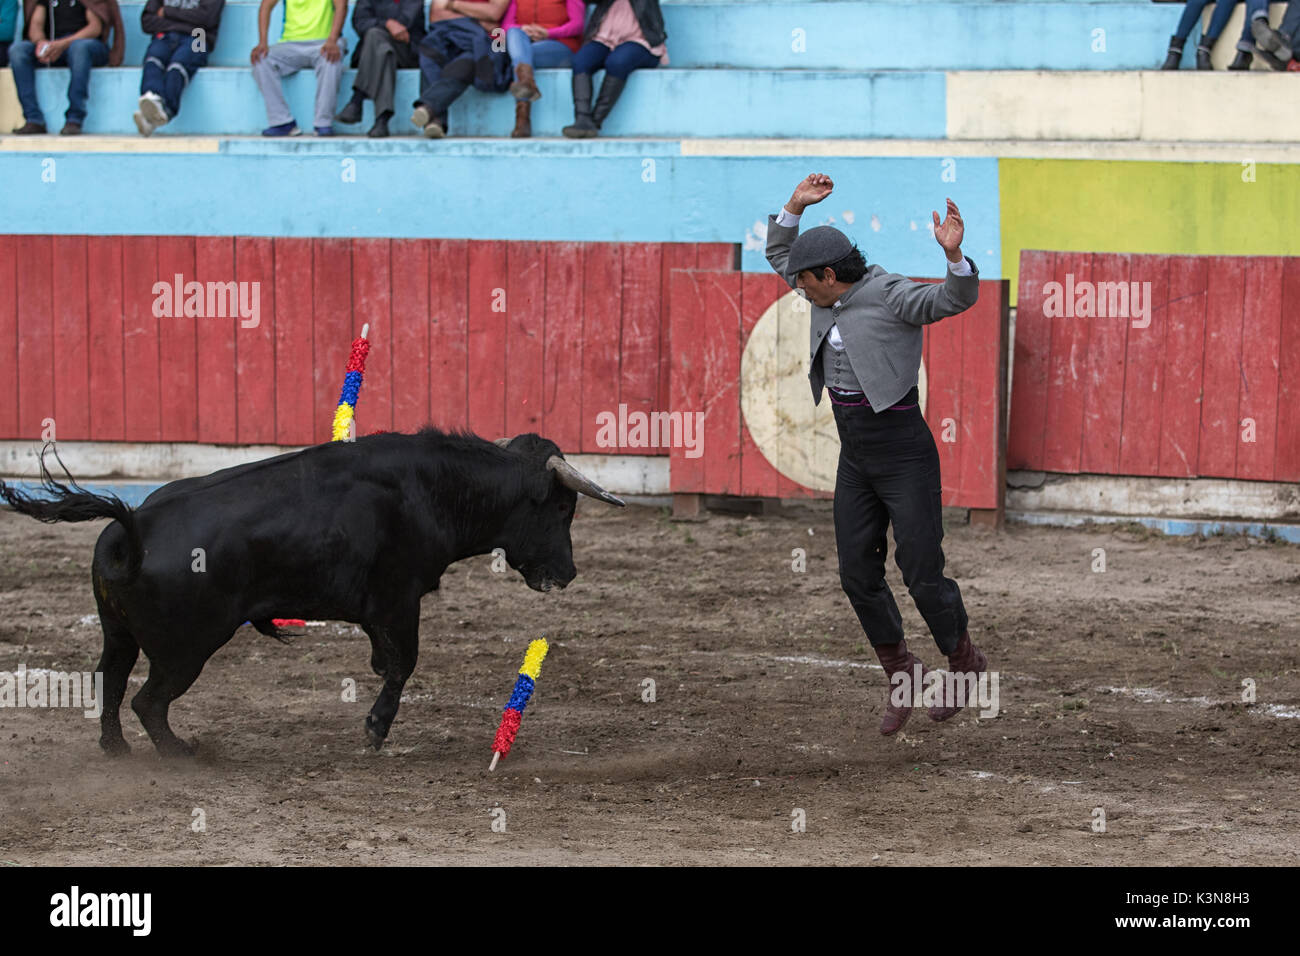 June 18, 2017 Pujili, Ecuador: picador jumps up in the front of the charging bull in the arena - Stock Image